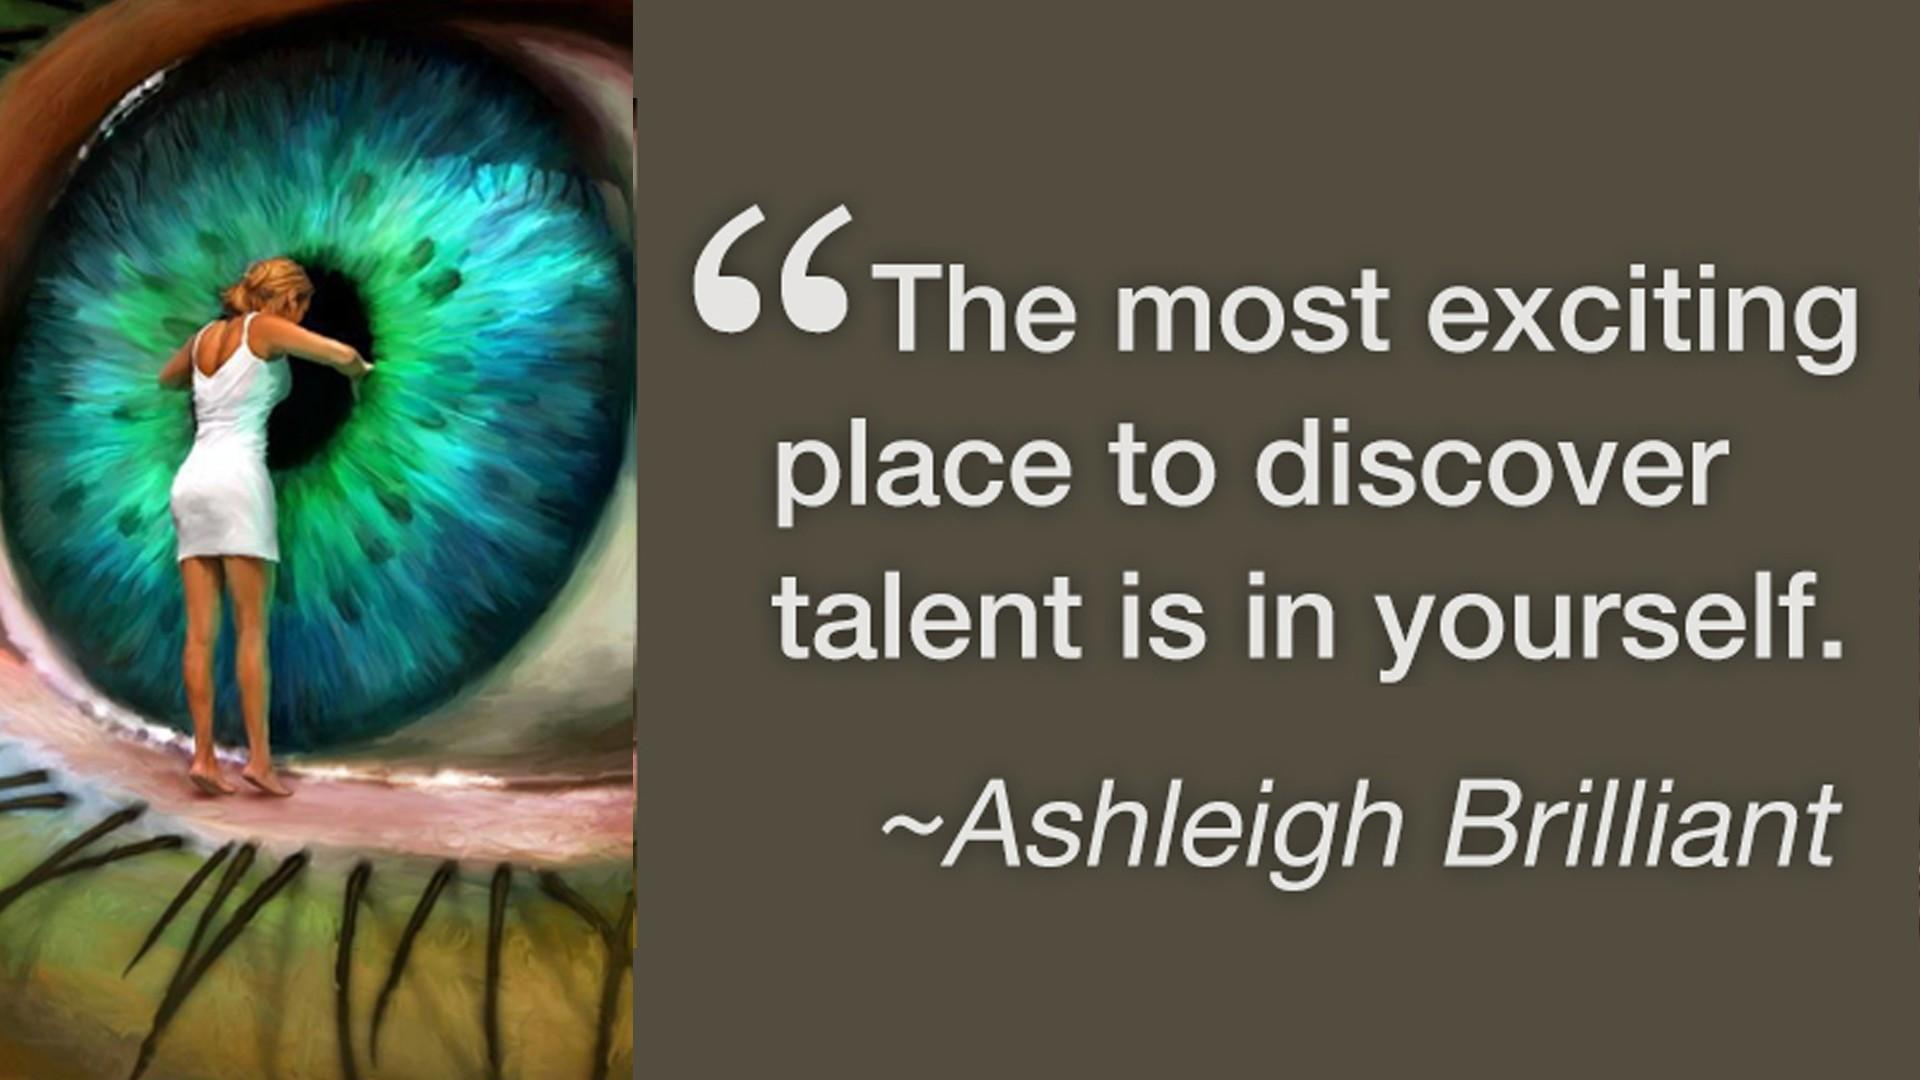 Ashleigh Brilliant Quote - The most exciting place to discover talent is in yourself